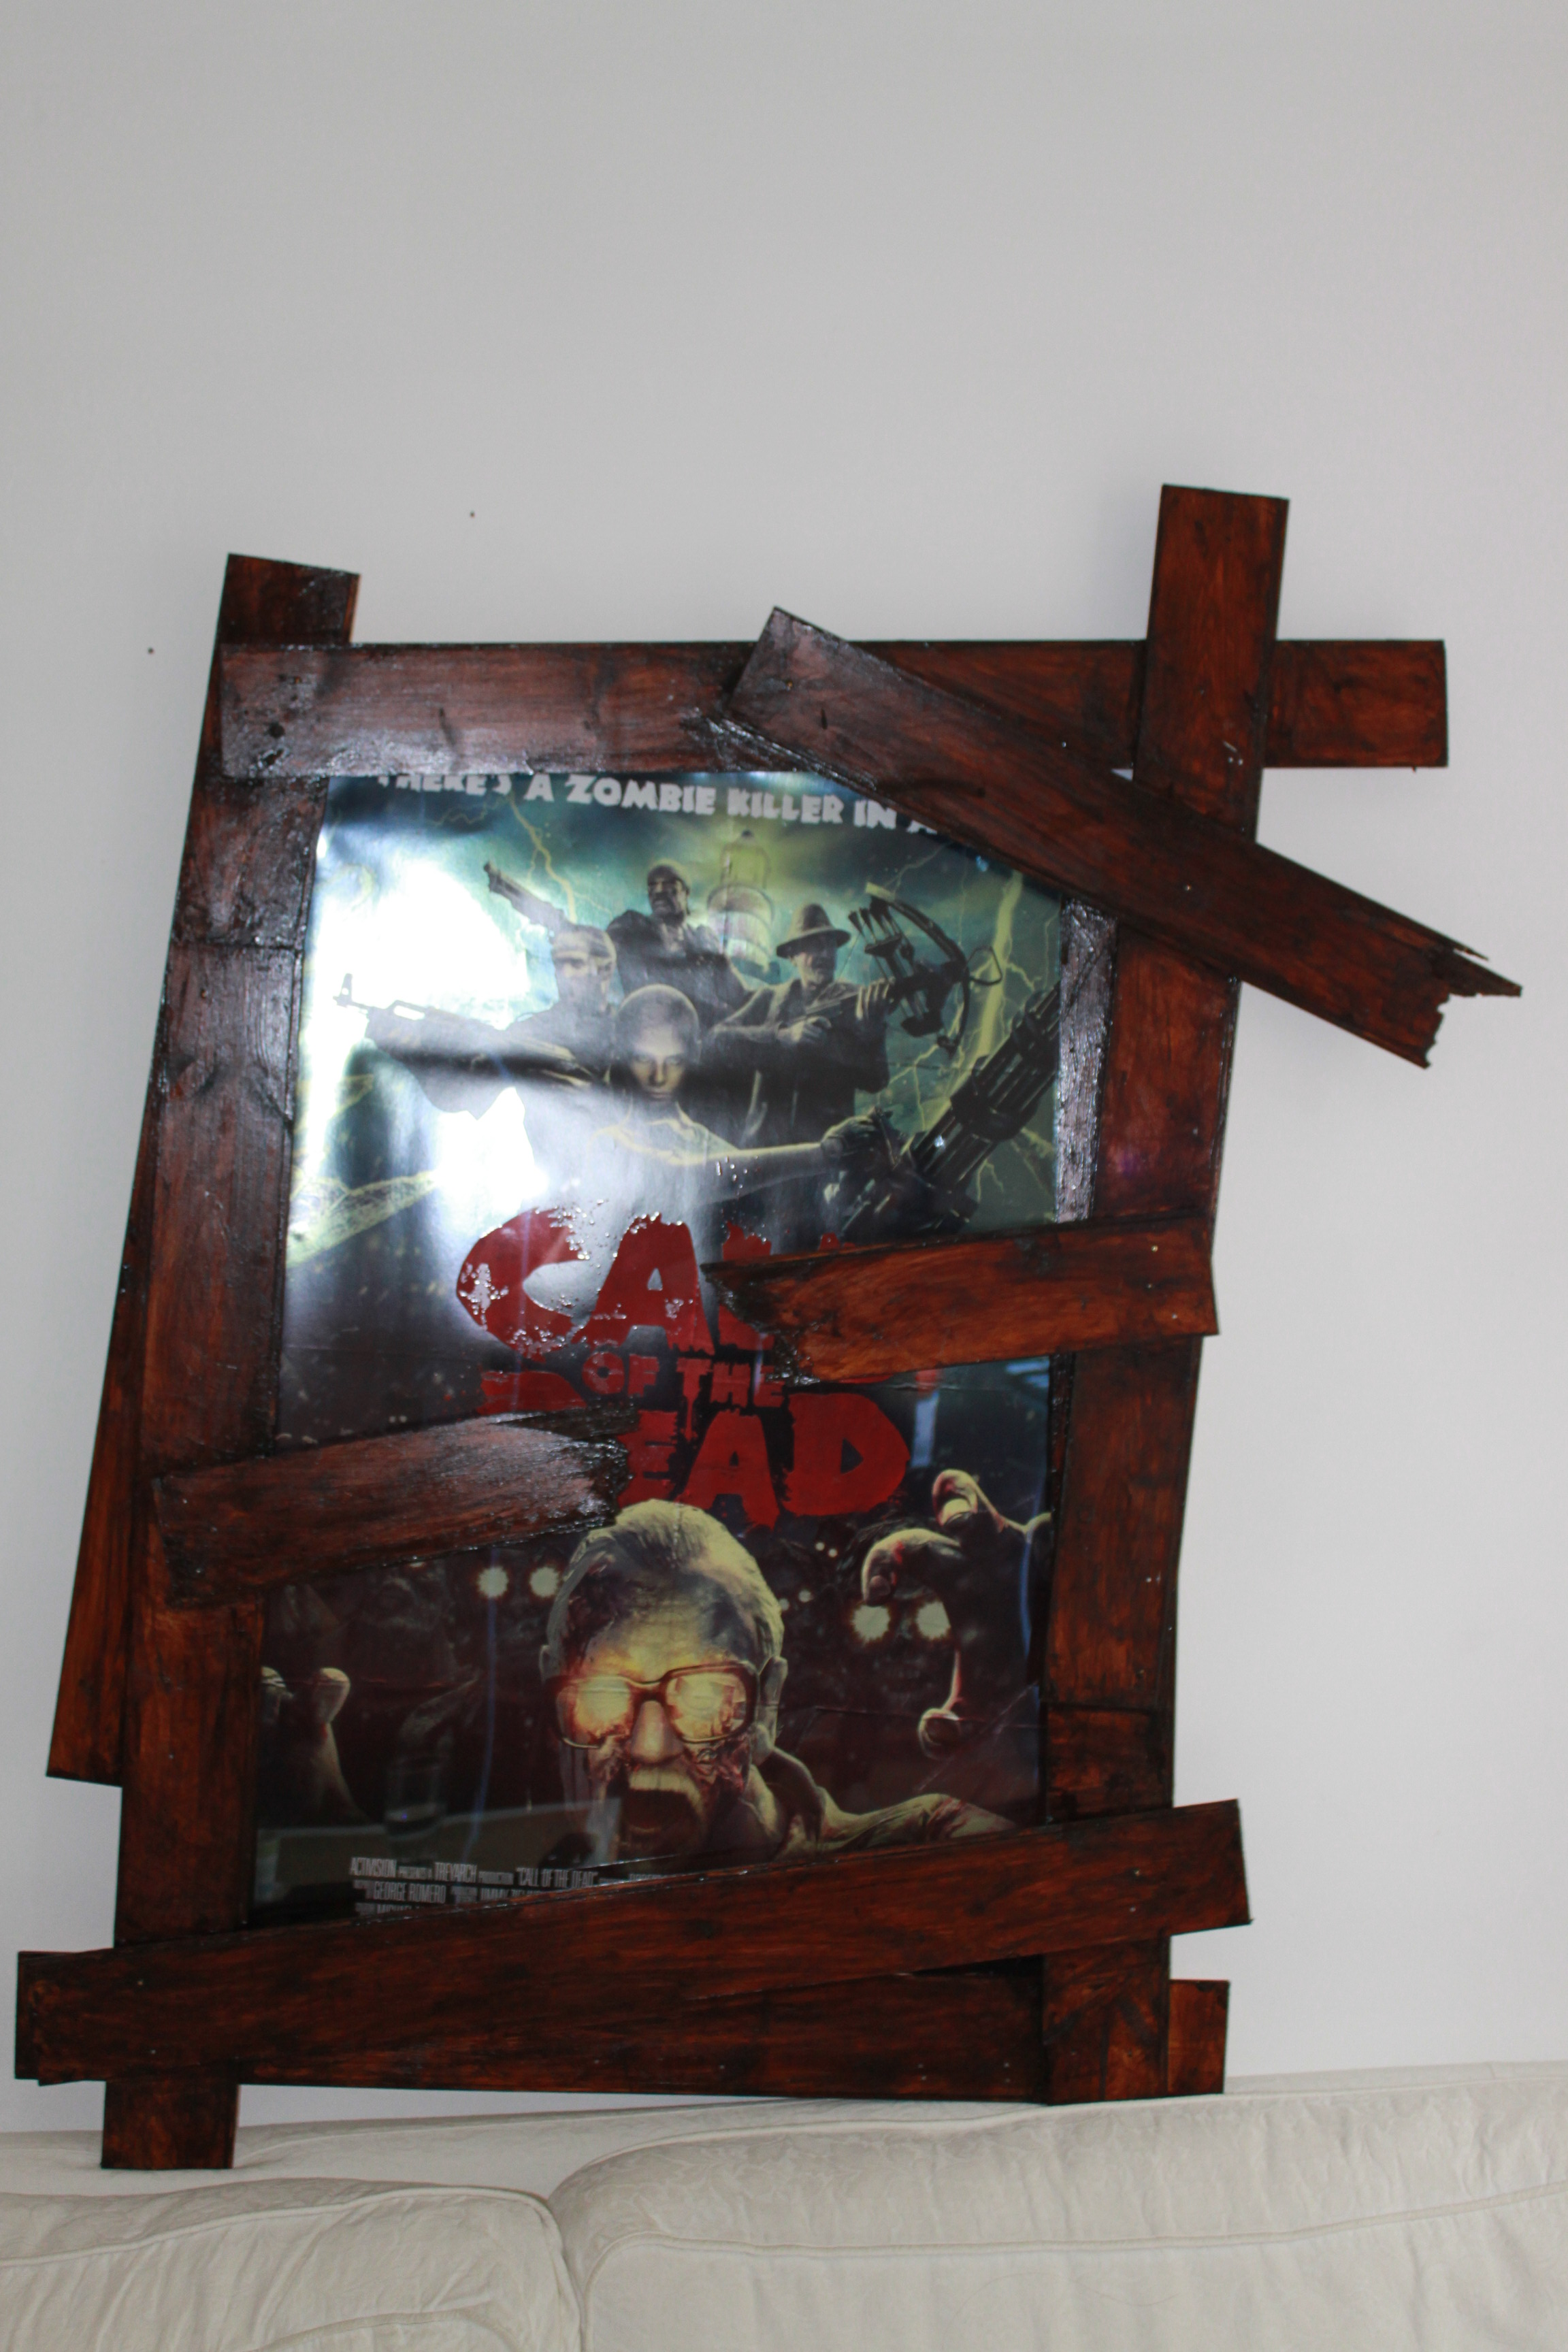 Frame for Call of Duty 'Zombies' poster